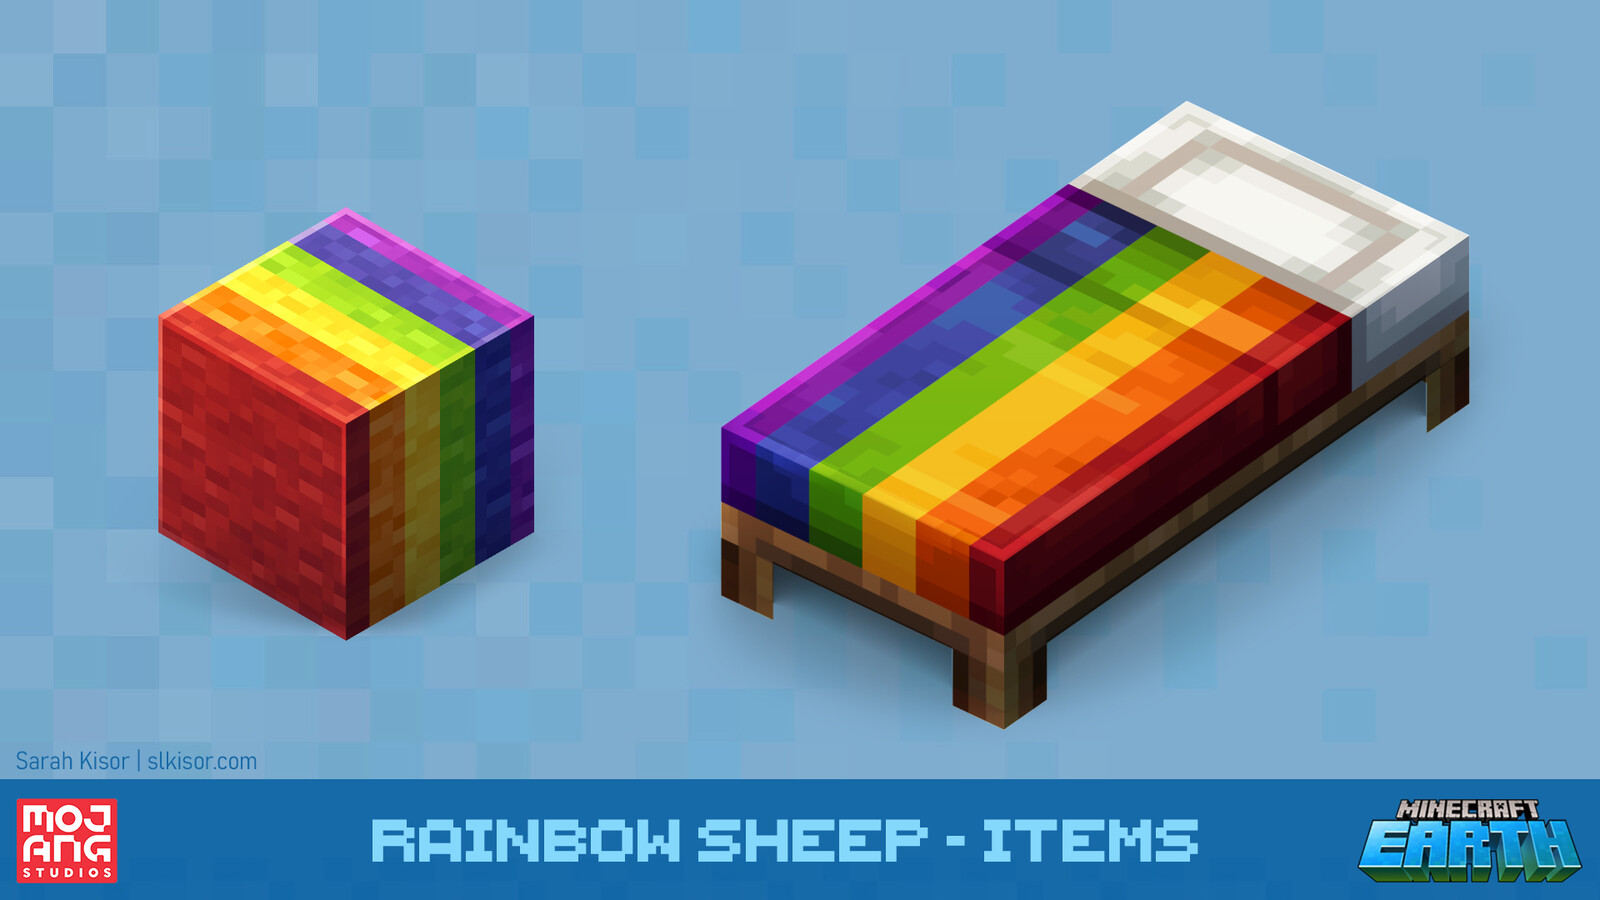 New rainbow items made from rainbow sheep wool! Based on the original textures by Jasper Boerstra.